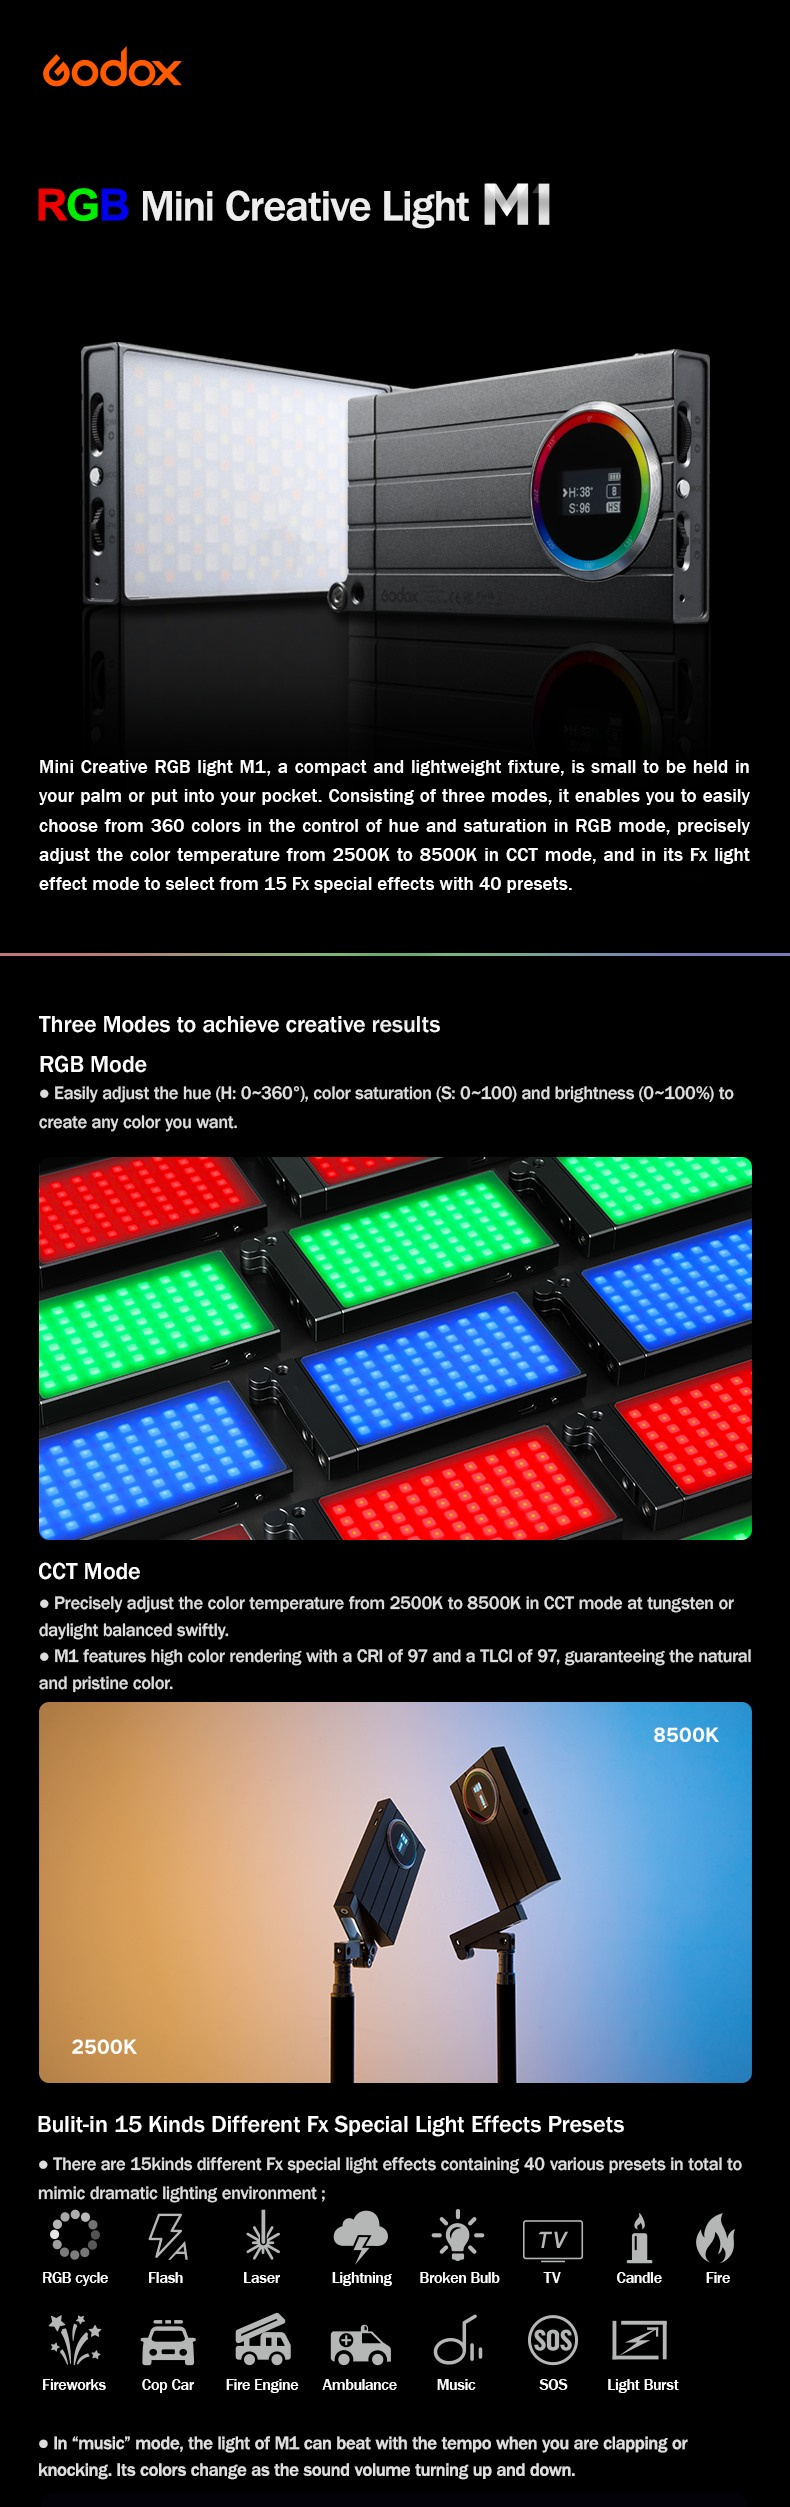 Godox M1 RGB Mini Ceative Light.  Three modes to achieve creative results. RGB mode, CCT mode, Built-in 15 kinds  different  FX effect presets.